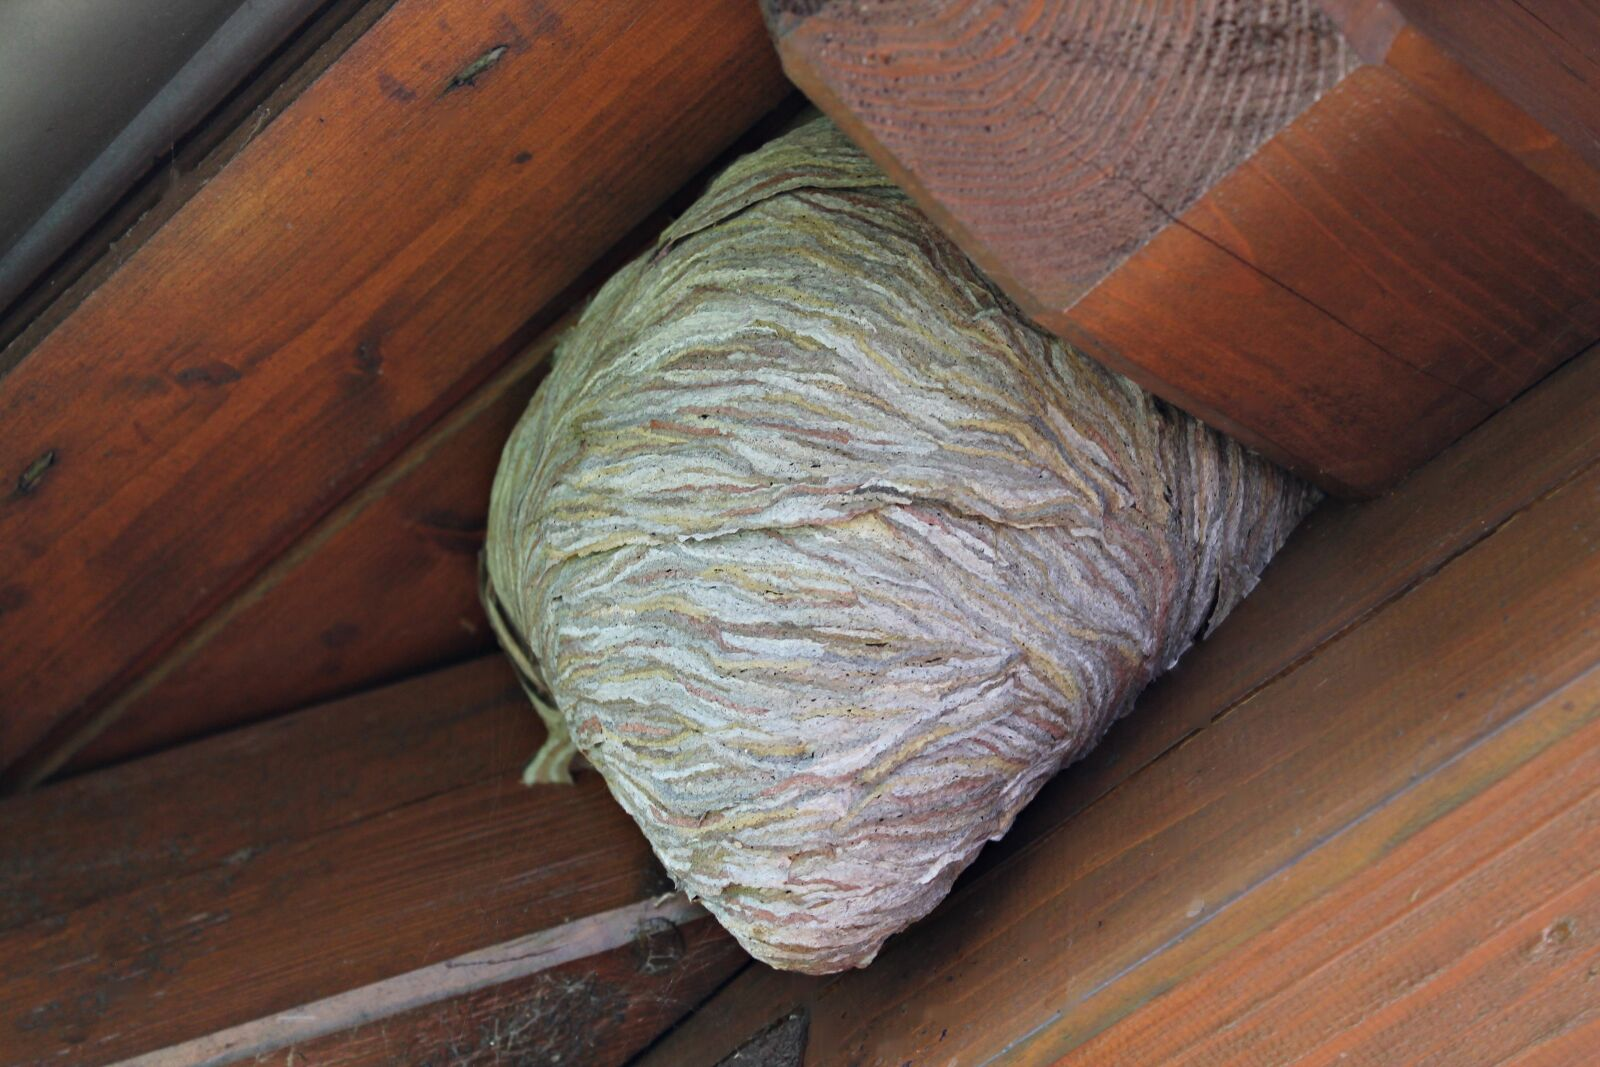 """Canon EOS 1100D (EOS Rebel T3 / EOS Kiss X50) sample photo. """"The hive, wasps dwelling"""" photography"""